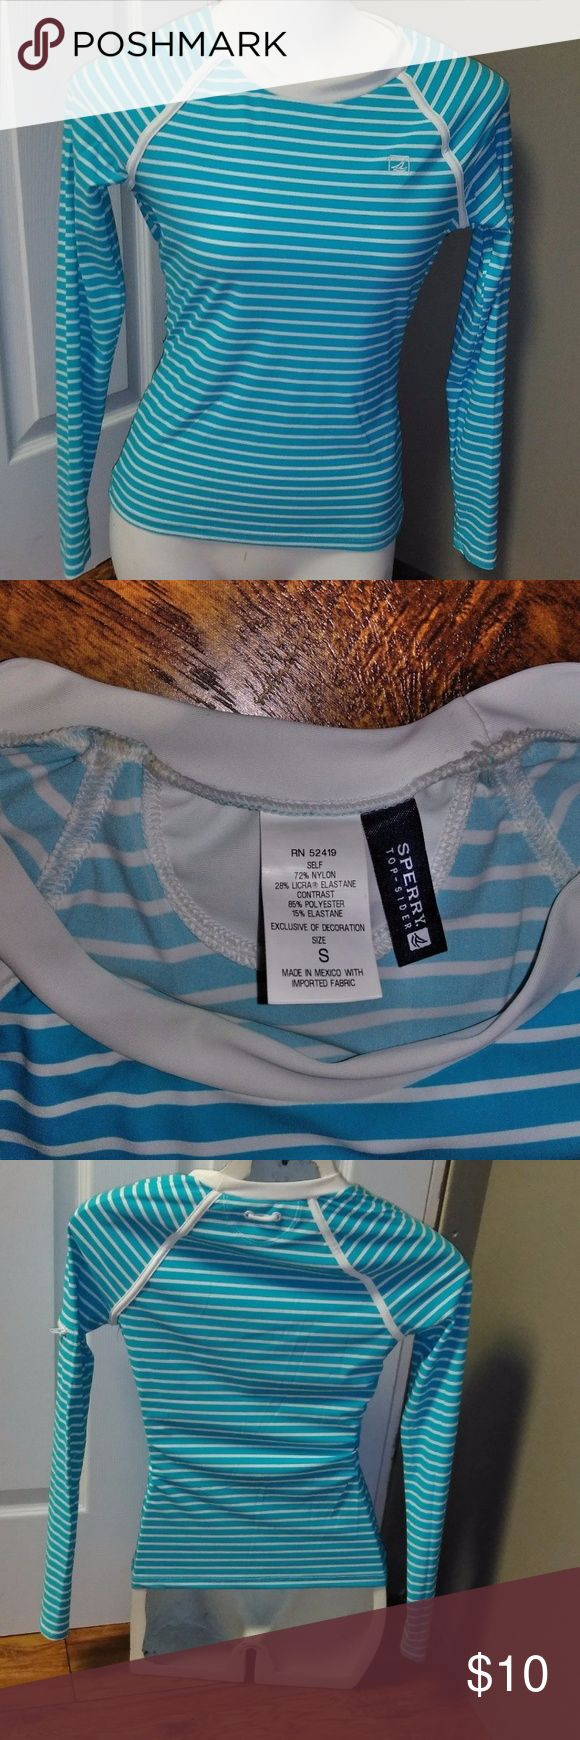 SPERRY TOP SIDER Striped L/S Active Top ~~ Small Up for sale is for a long sleeve misses active top by SPERRY TOP SIDER ~~ Size Small  This top is mainly light blue in color with thin white stripes. Has a zipper pocket on the left sleeve. Fitted top that is very lightweight.   Made of 72% Nylon, 28% Elastane  Excellent condition with no flaws or stains and comes from my clean smoke free and pet free home. OFFERS WELCOME! Sperry Top-Sider Tops